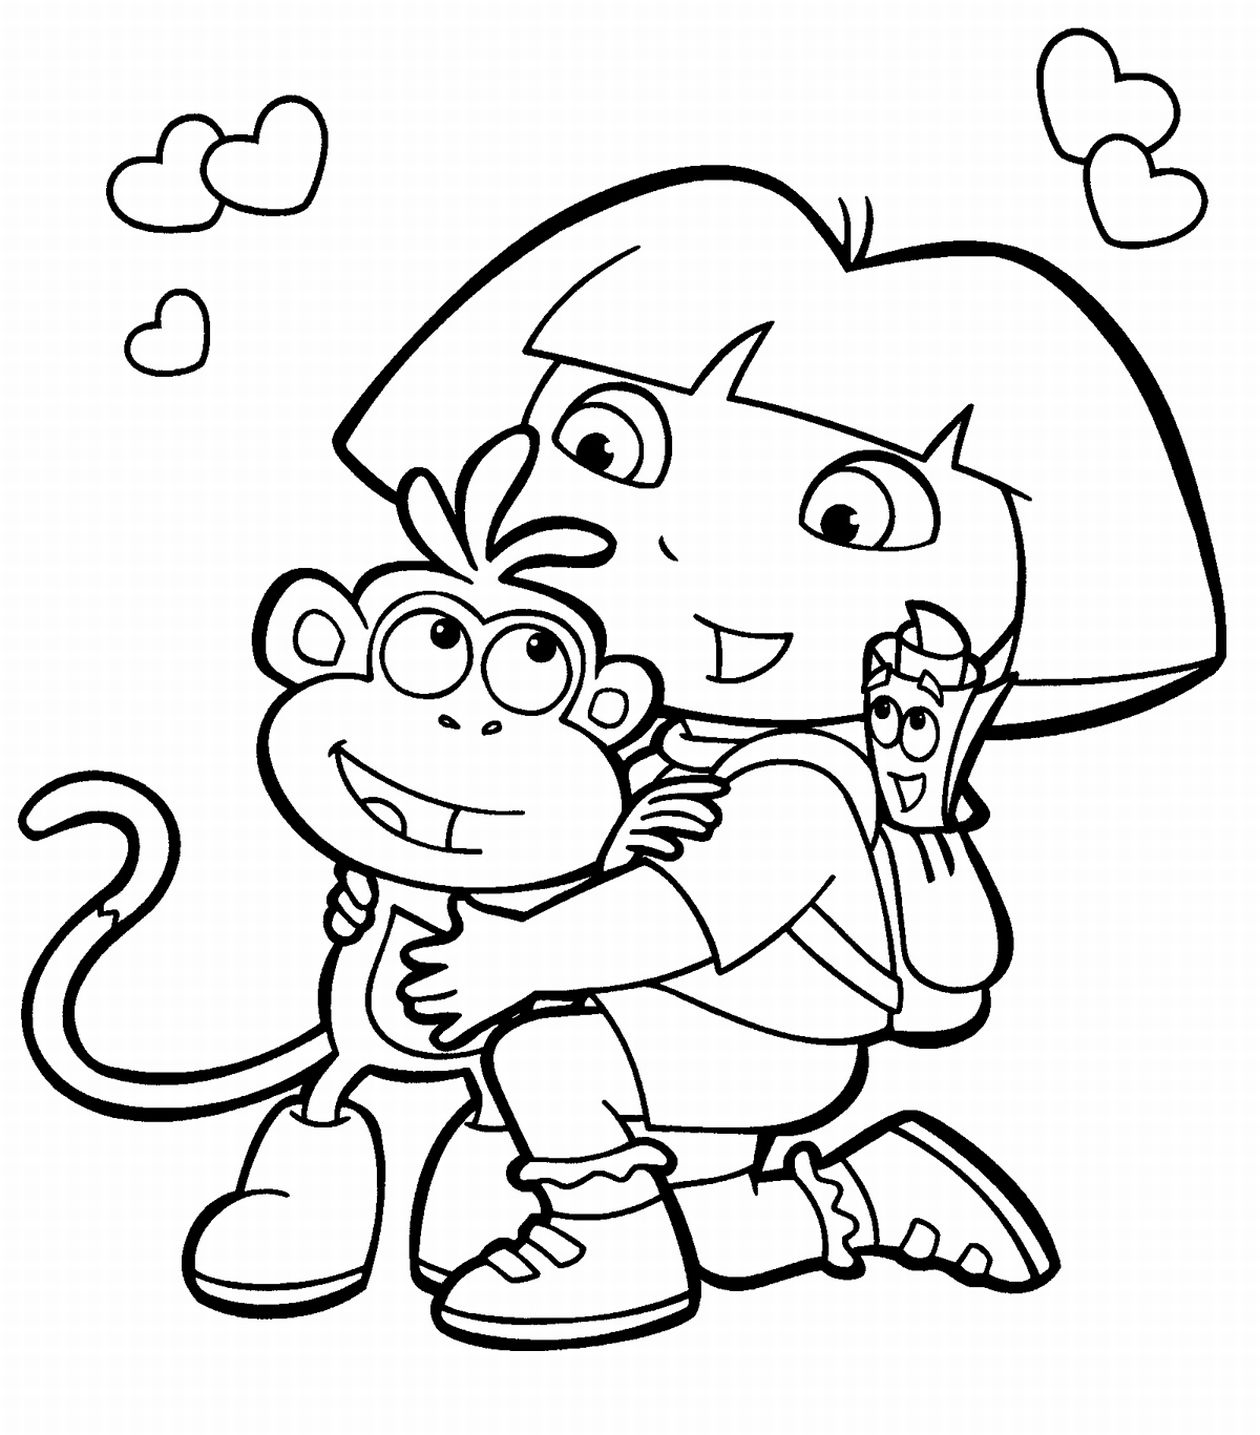 dora colouring sheet dora coloring pages only coloring pages sheet dora colouring